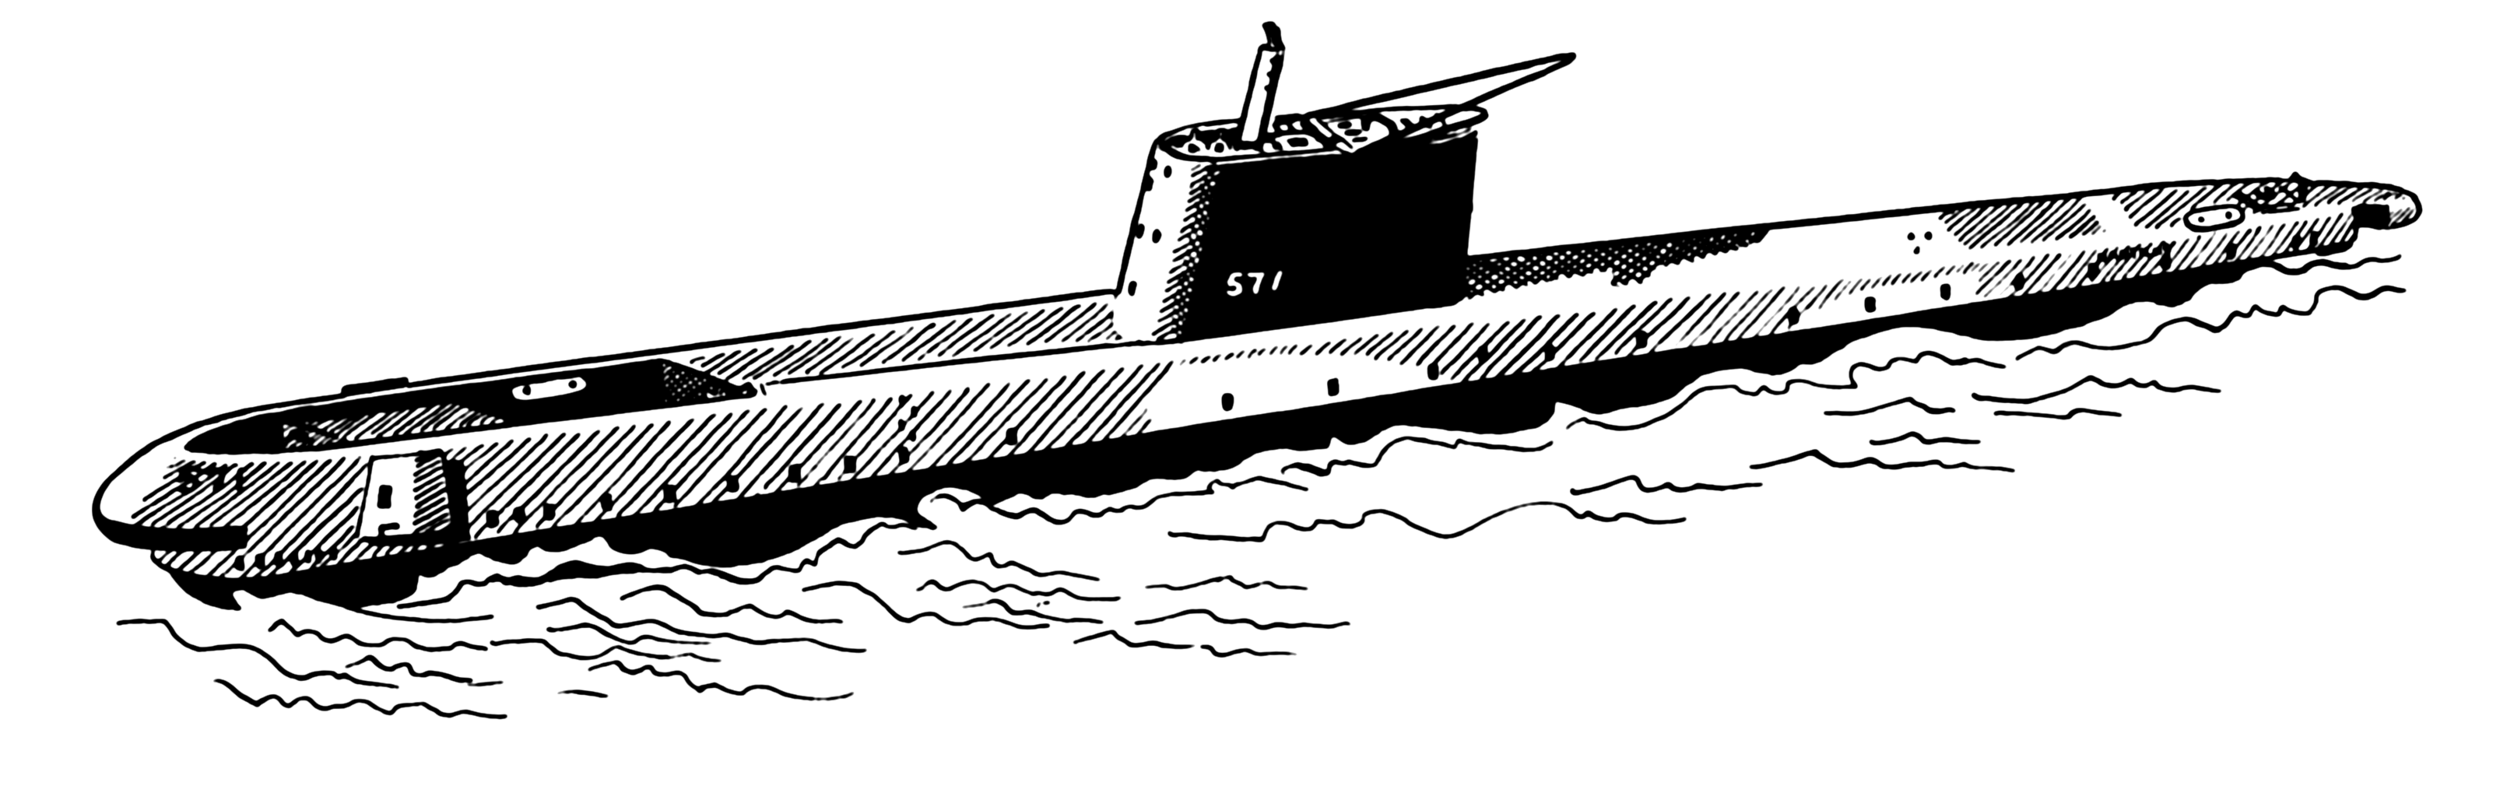 Submarine_(PSF).png